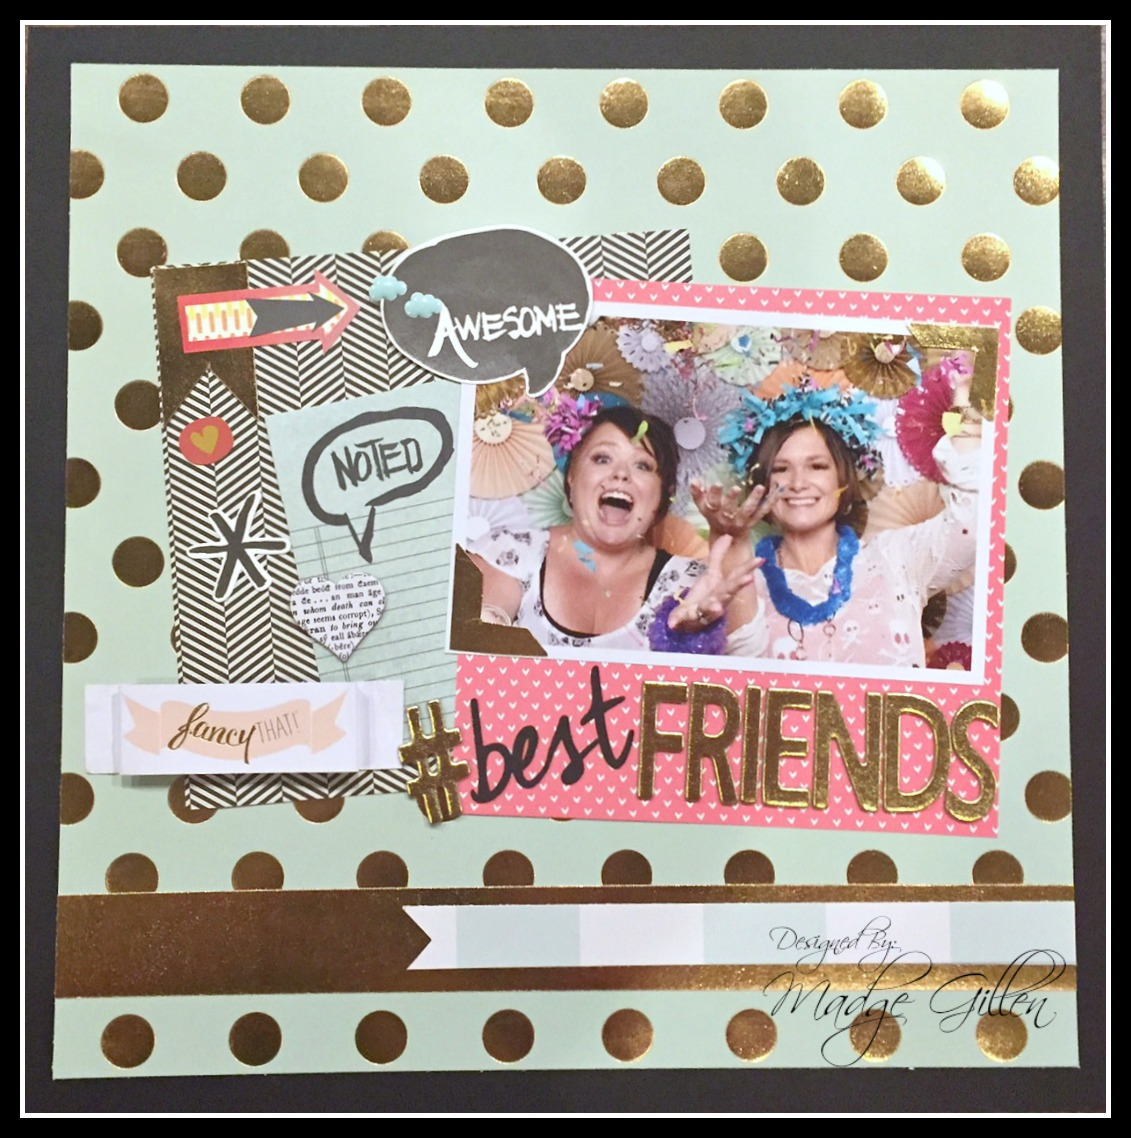 #Best Friends Layout 1